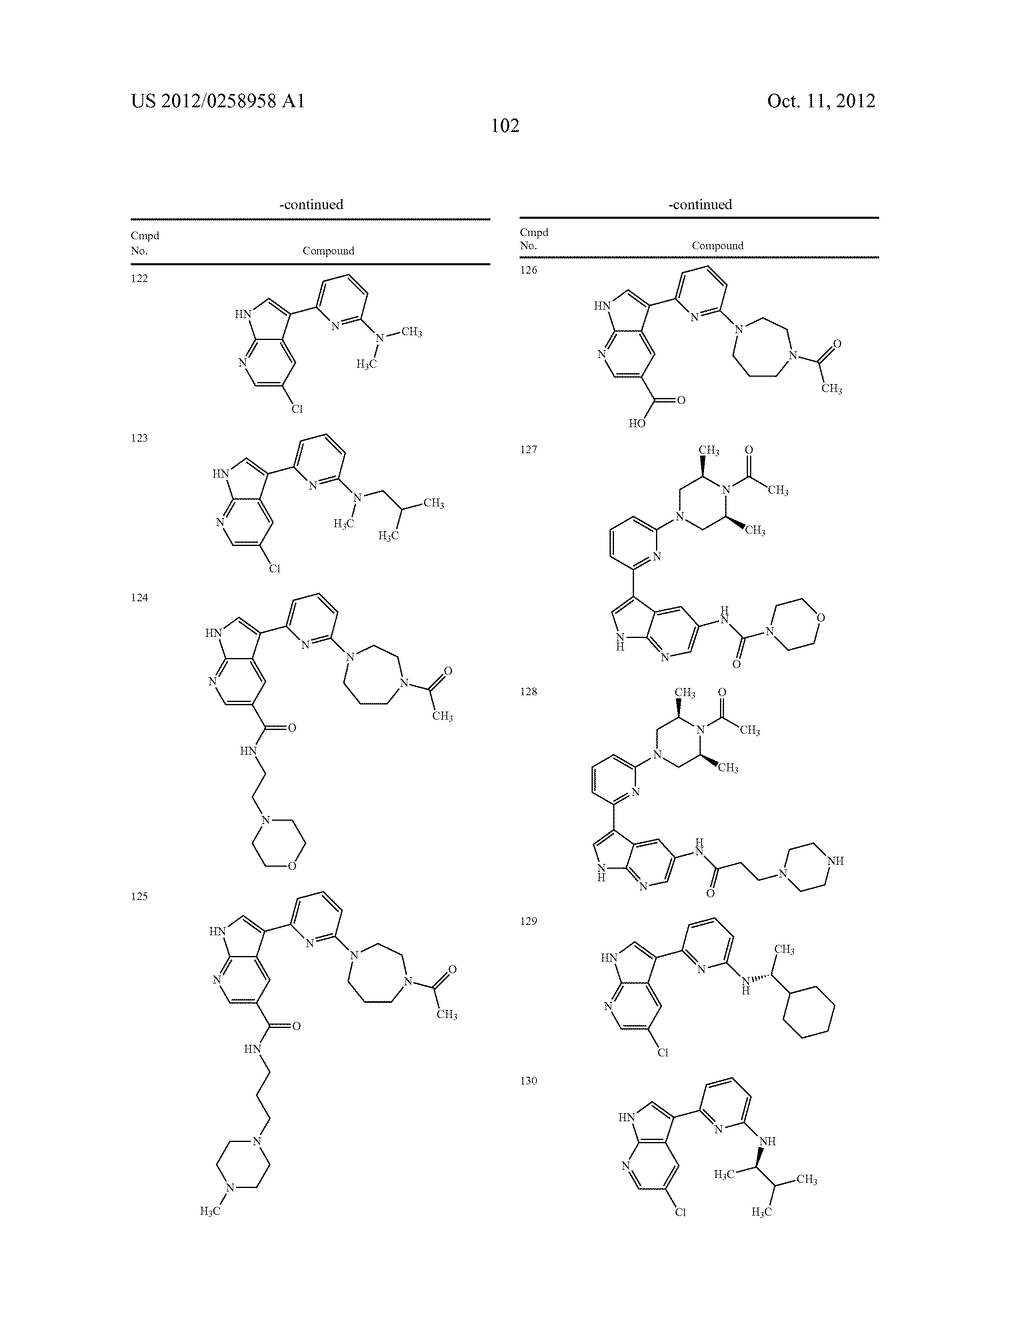 AZAINDOLES USEFUL AS INHIBITORS OF JAK AND OTHER PROTEIN KINASES - diagram, schematic, and image 103